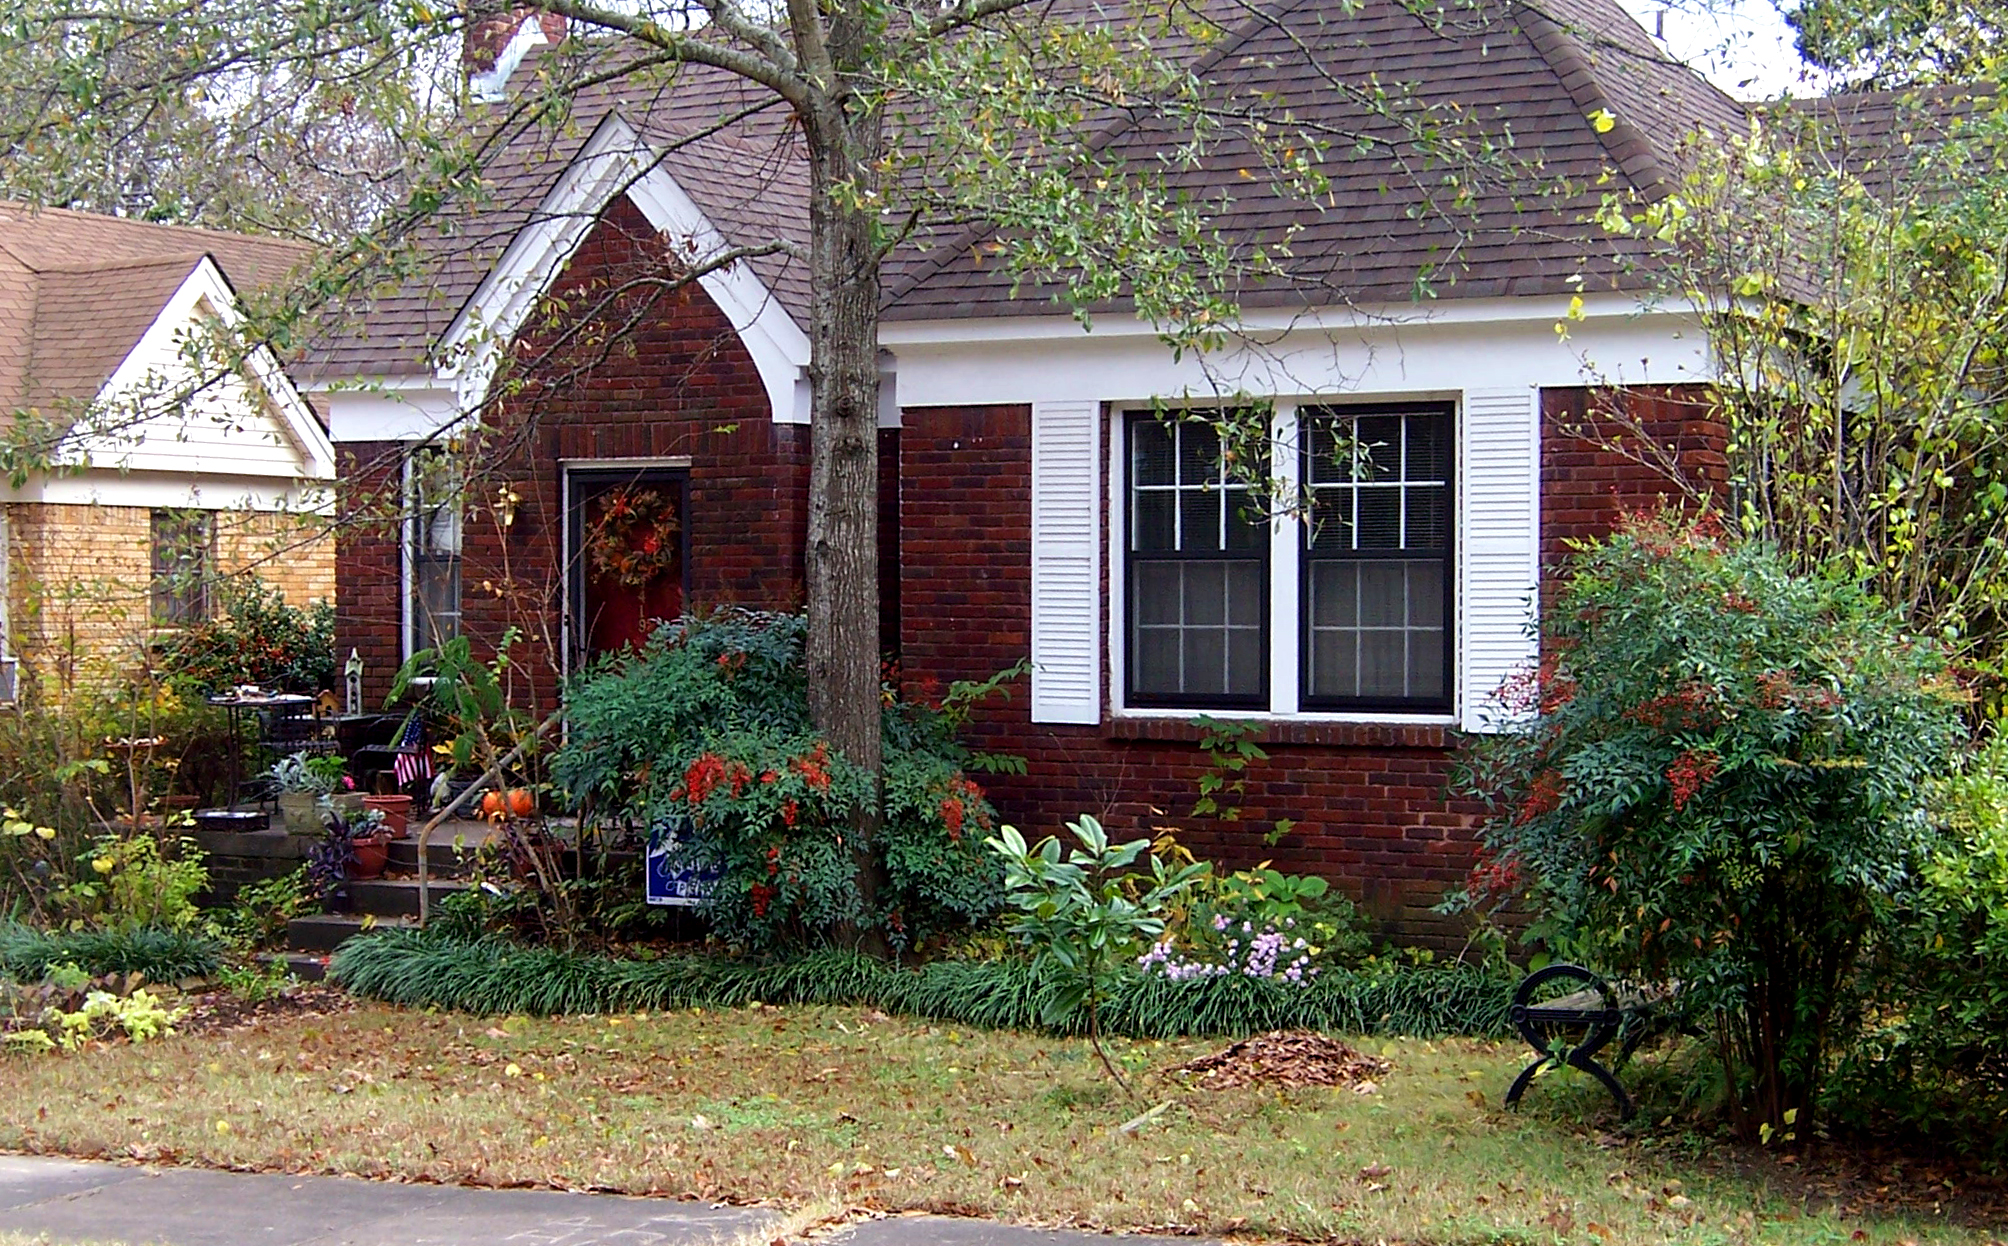 Hillary Rodham and Bill Clinton lived in this 980-square-foot (91m2) house in the Hillcrest neighborhood of Little Rock from 1977 to 1979 while he was Arkansas Attorney General.[9]